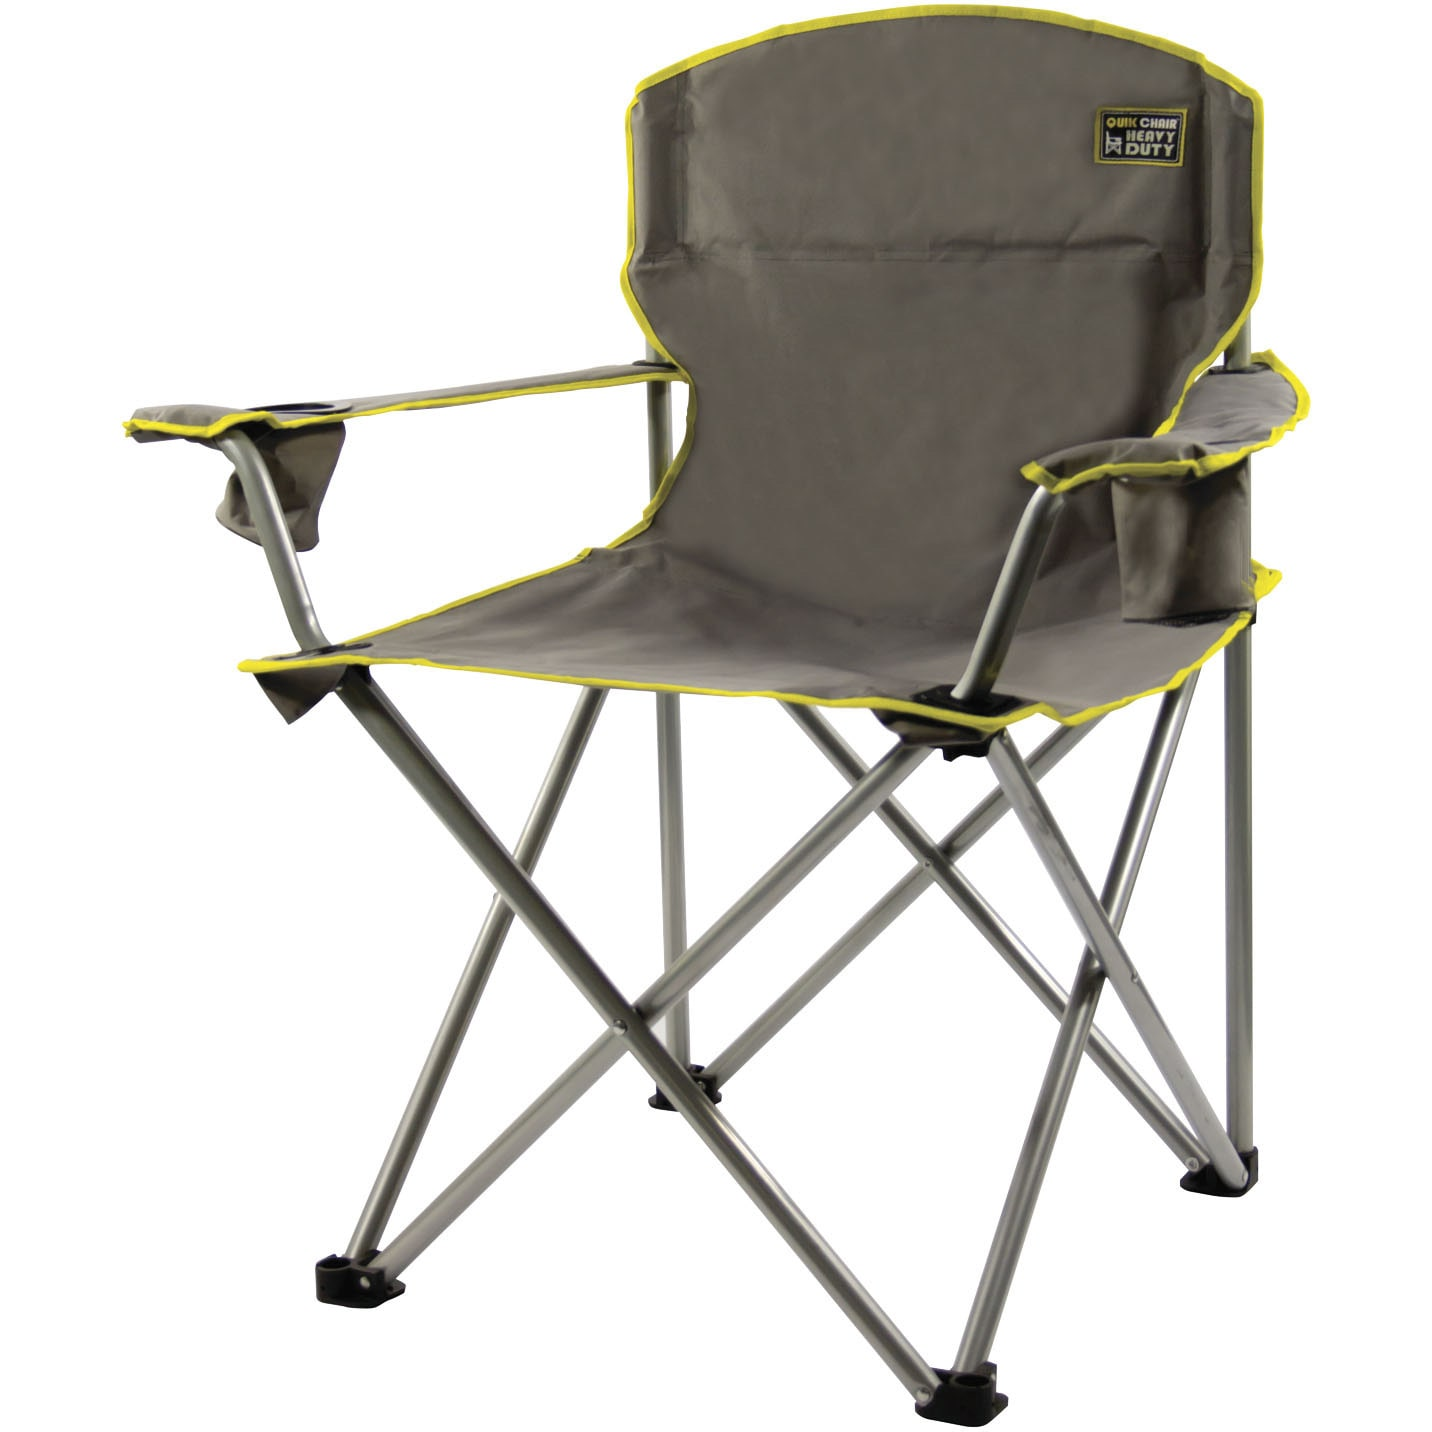 Quik Chair 1 4 Ton Heavy Duty Folding Armchair Walmart